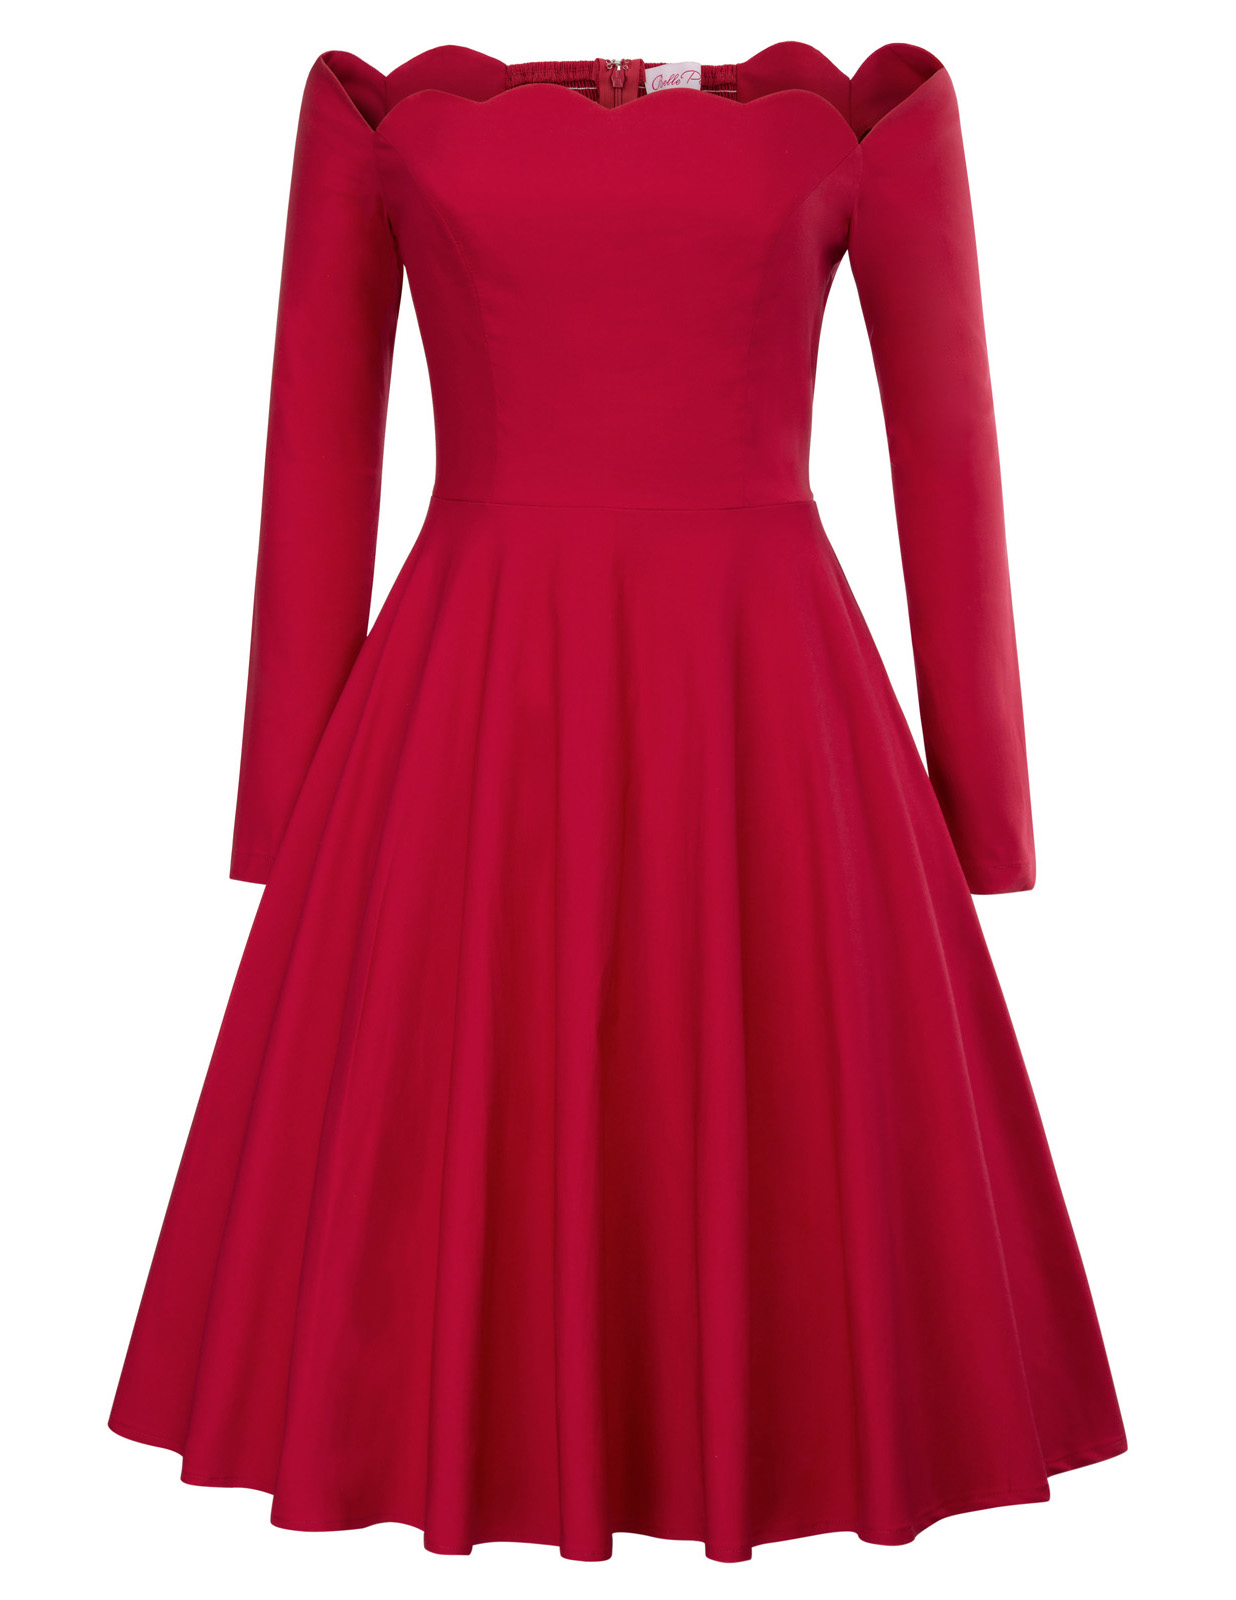 Vintage dresses 50s 60s green black red Sexy Women Long Sleeve Off Shoulder pin up party Retro Dress